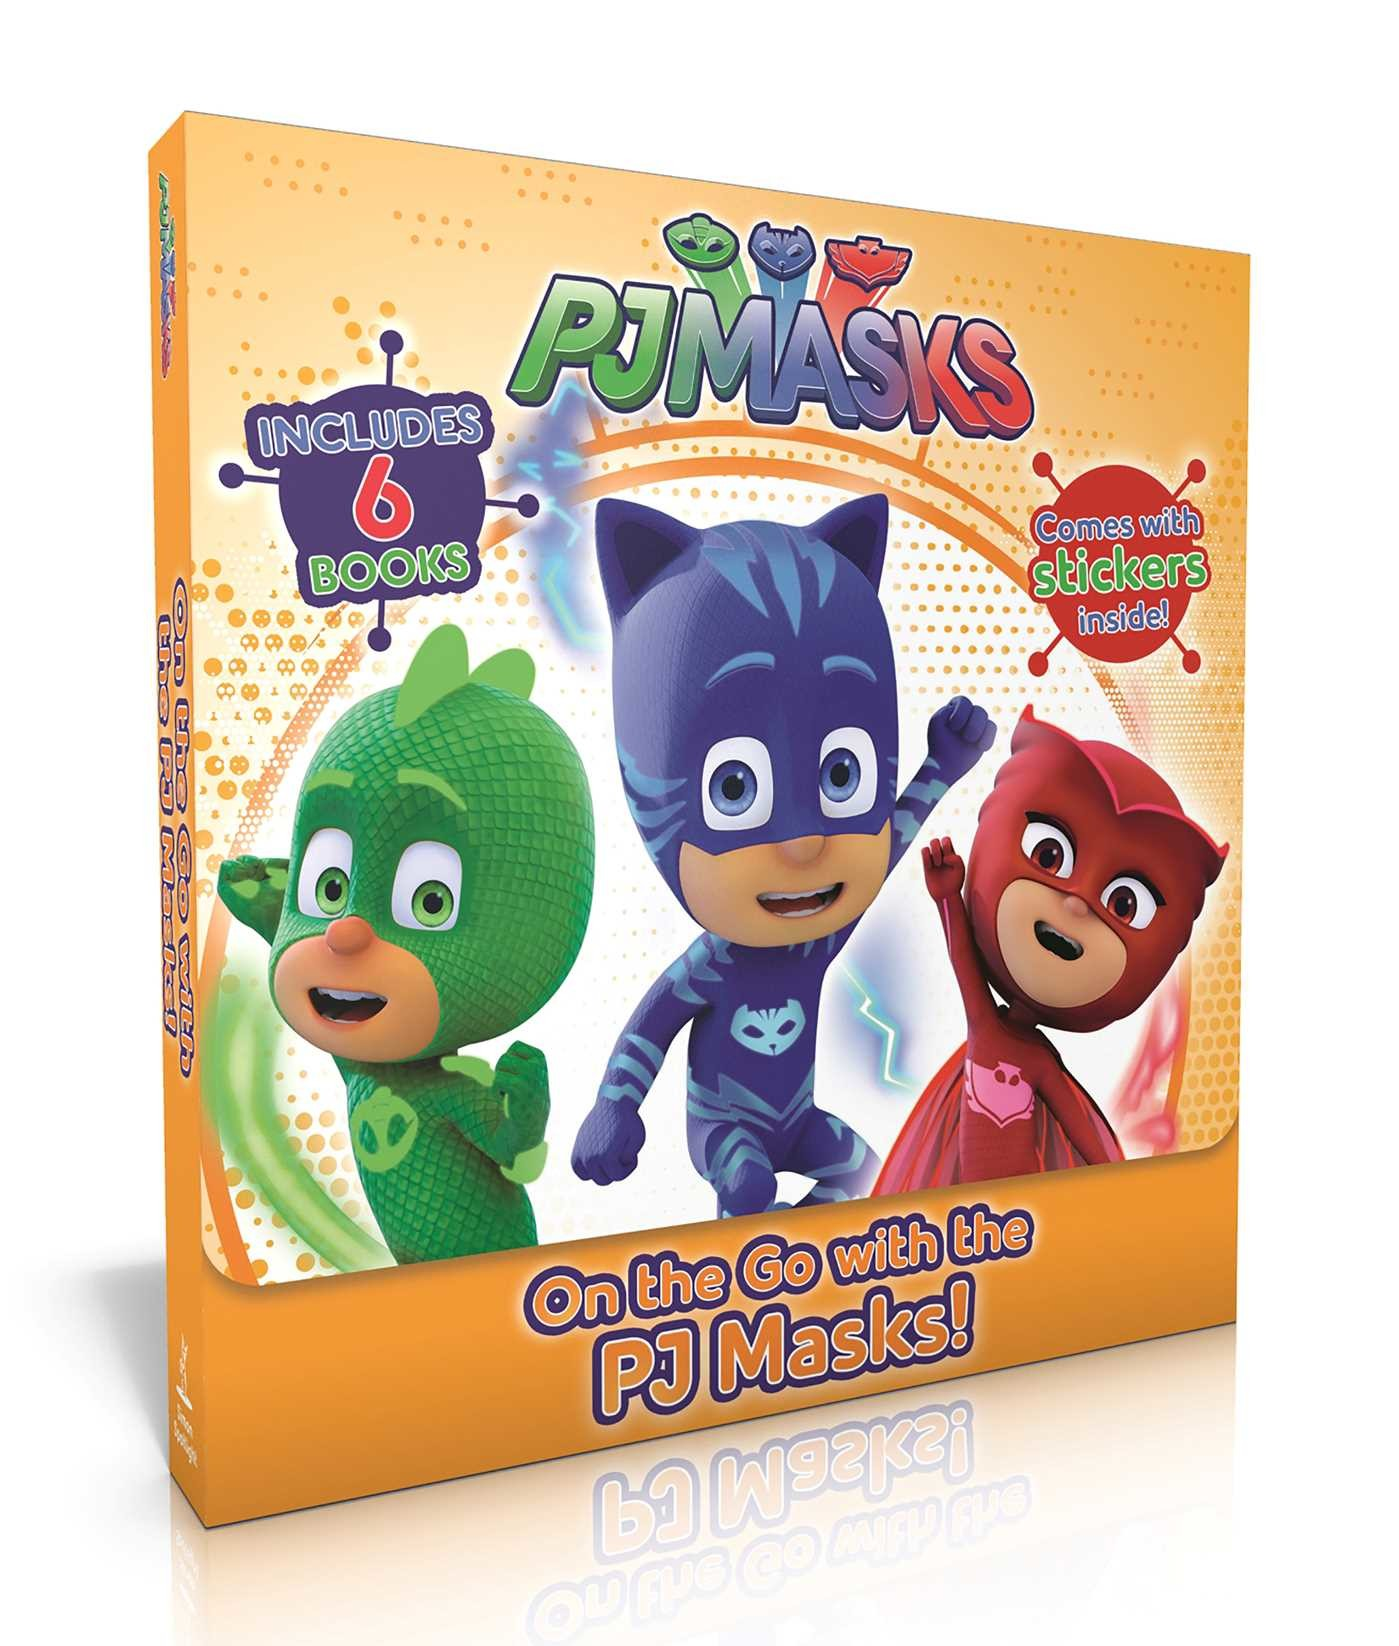 On the go with the pj masks 9781534411326.in01